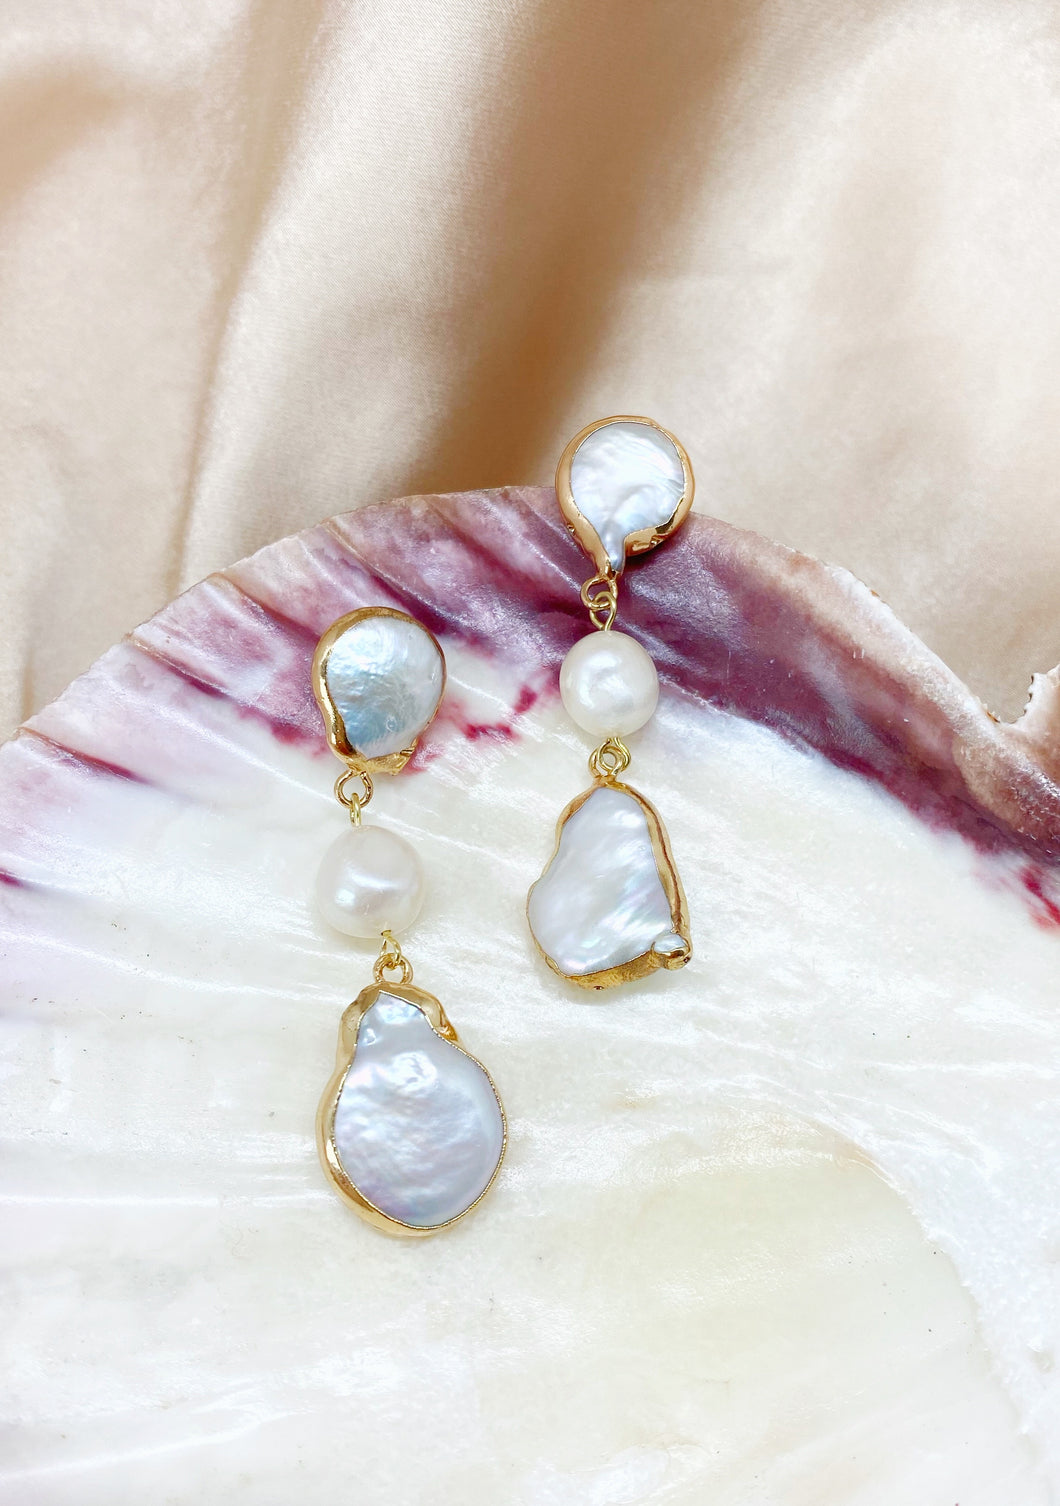 Pearl Love earrings